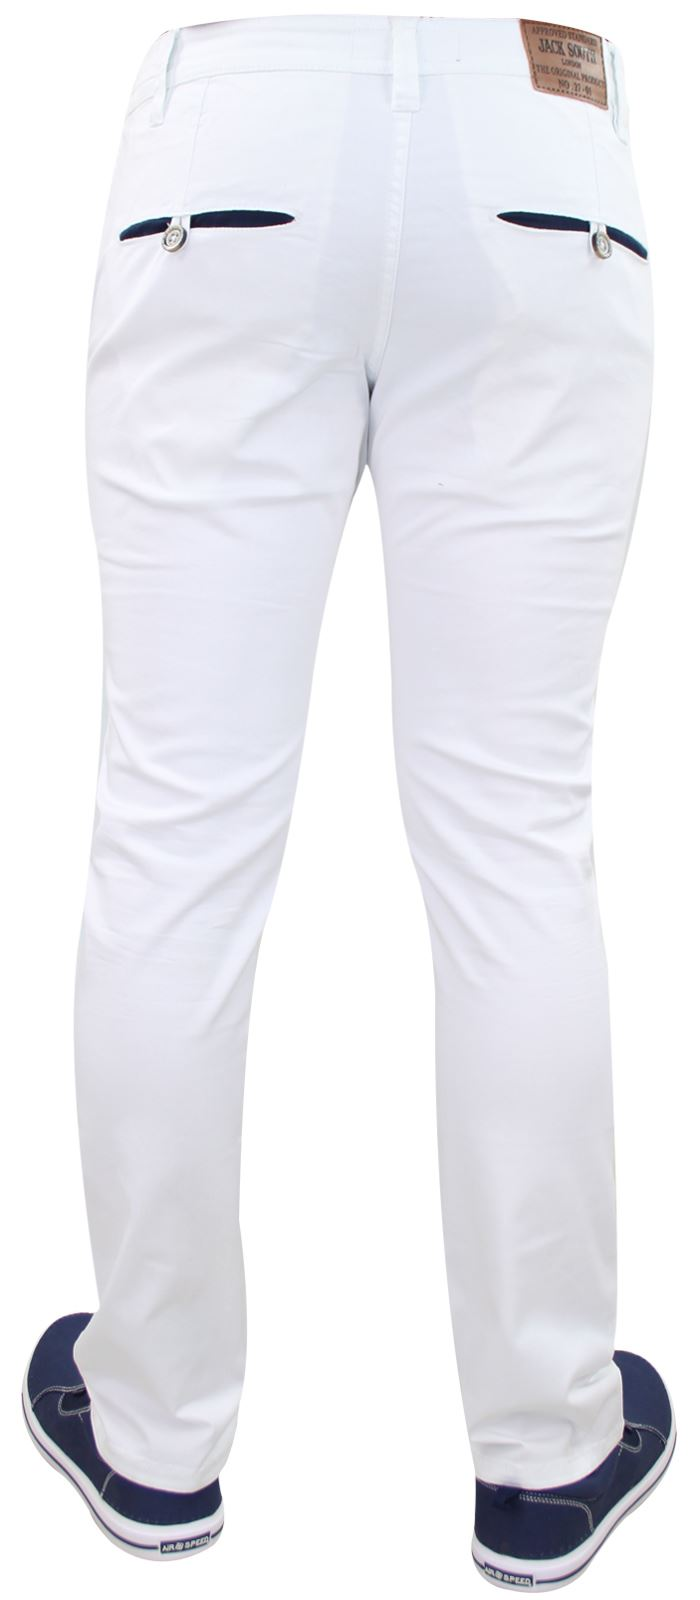 Men-Chinos-Trousers-Regular-Fit-Stretch-Cotton-Jeans-Pants-All-Waist-Sizes thumbnail 29